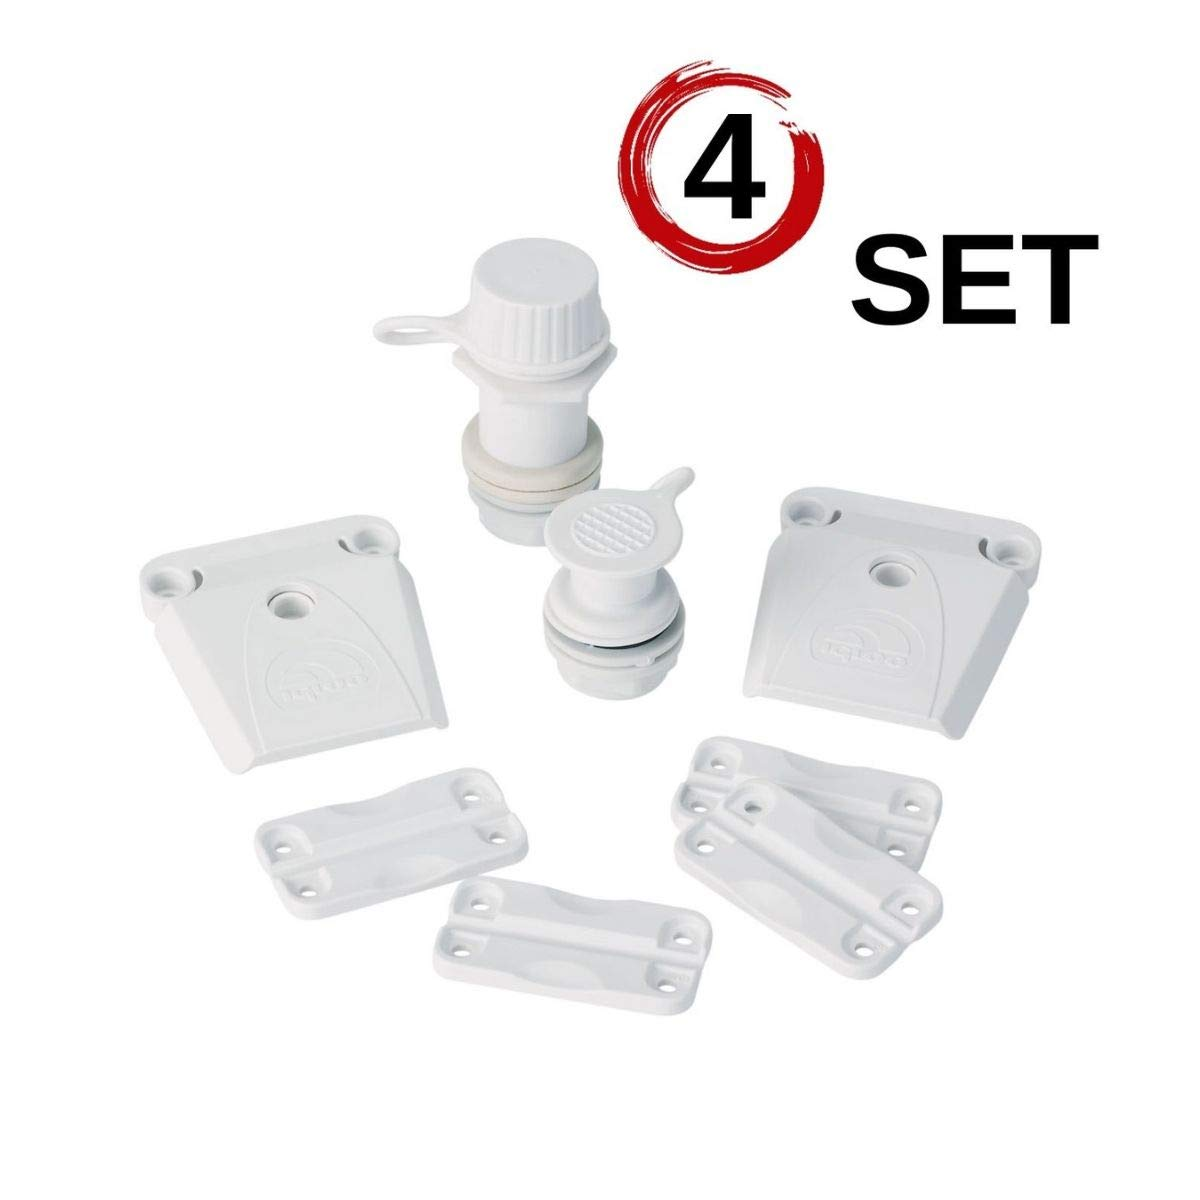 Igloo Parts Kit for Ice Chests (4 Set)